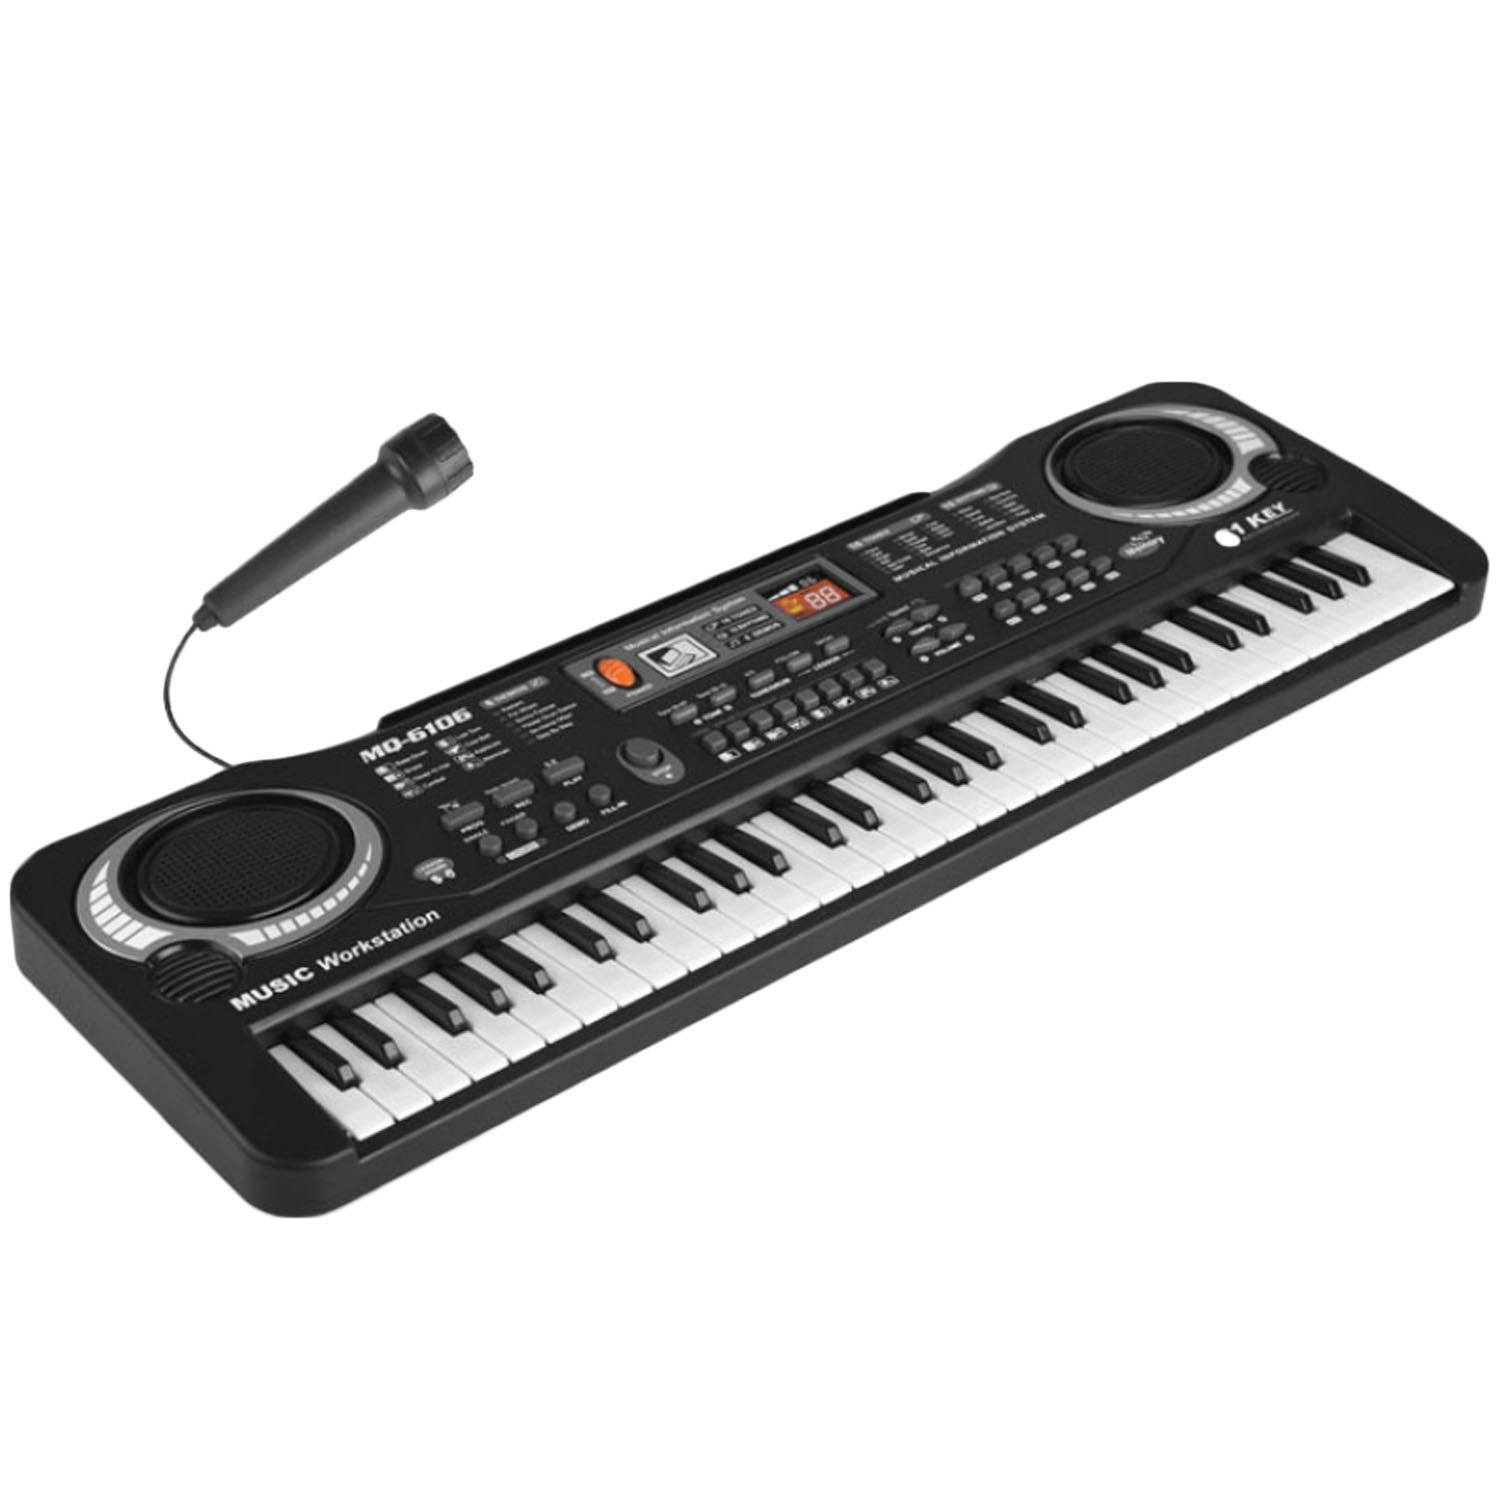 Amazon.com: Multi-function 61 Keys Kids Electronic Organ Keyboard Piano Child Musical Teaching Toy with Microphone And EU Power Cord: Musical Instruments